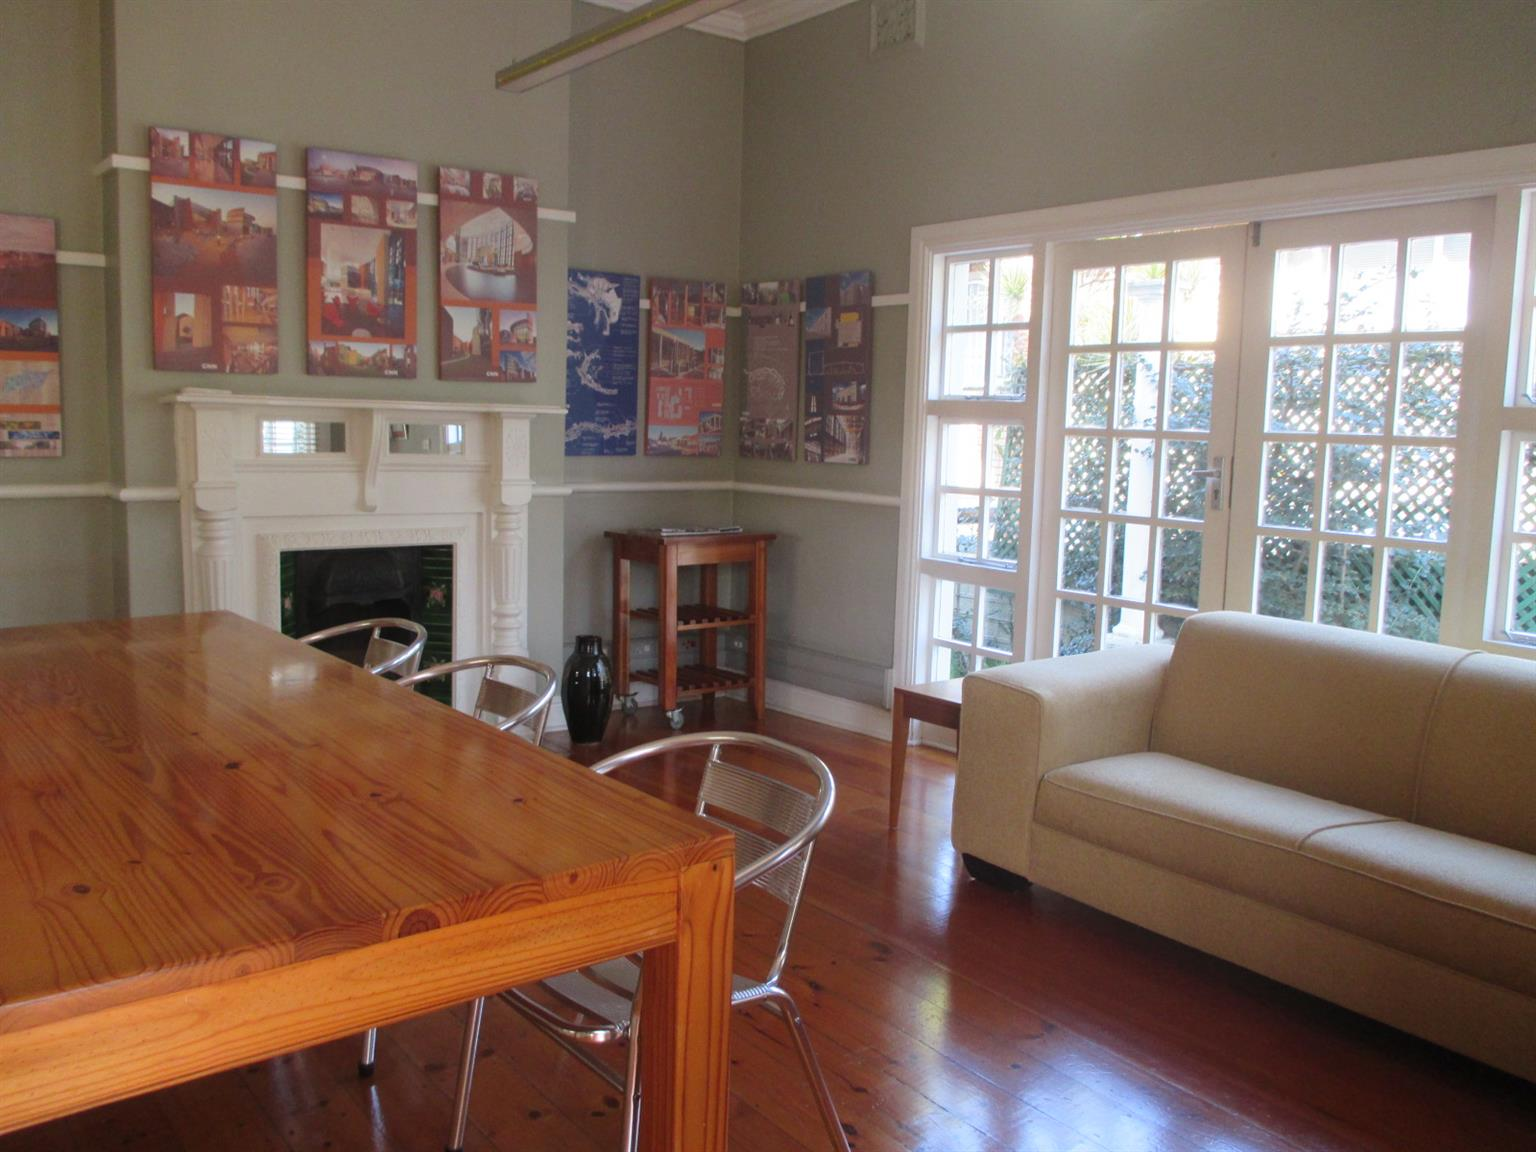 ARE YOU LOOKING FOR A MEETING ROOM TO HIRE IN FLORIDA ROAD?